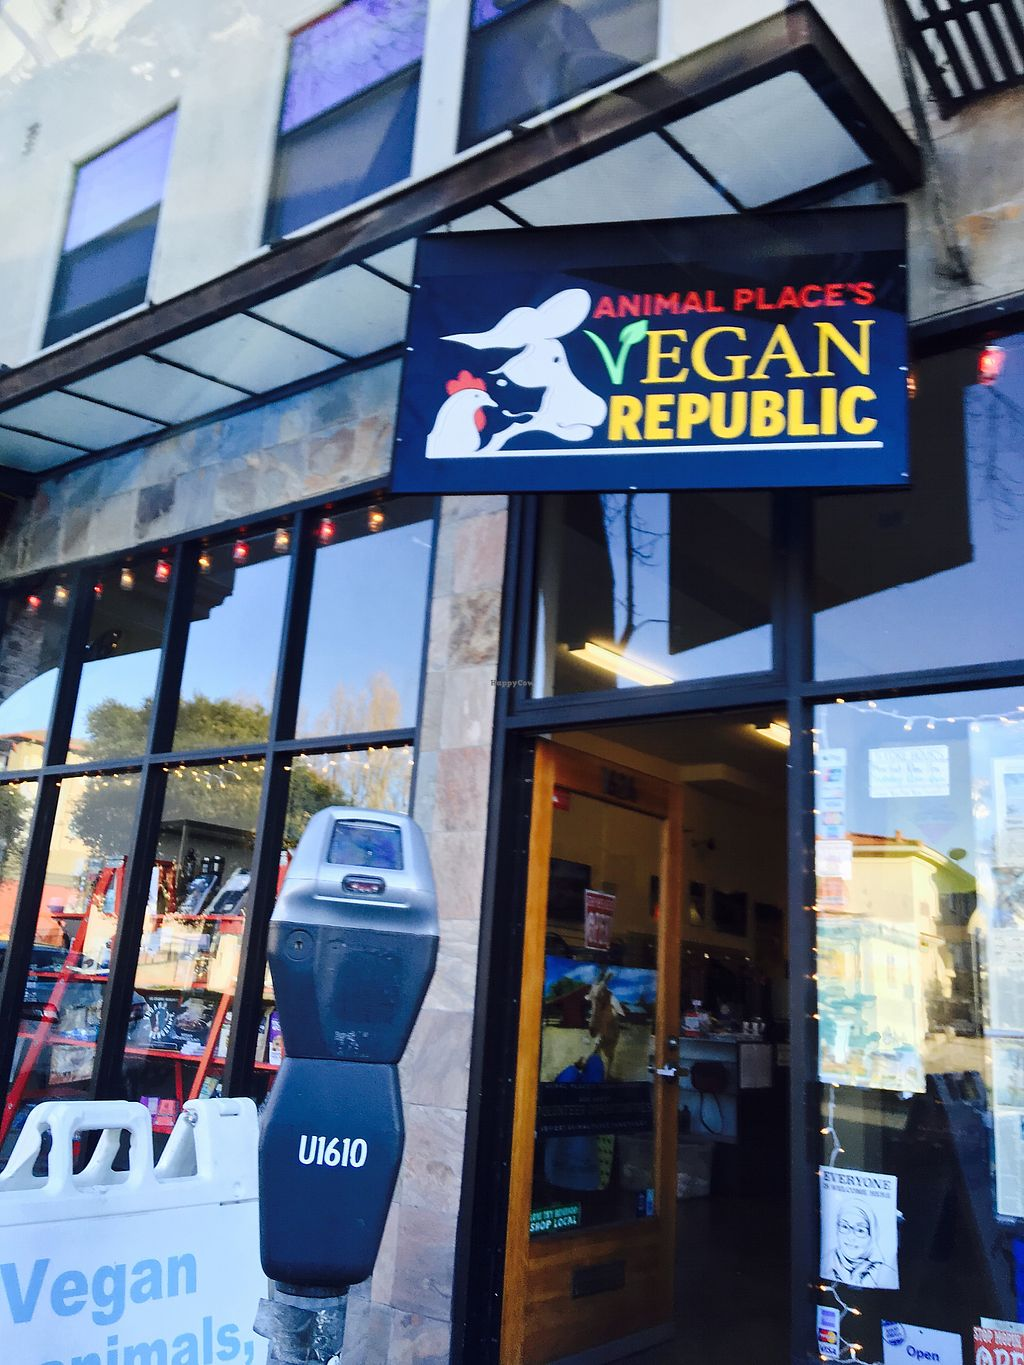 """Photo of Animal Place's Vegan Republic  by <a href=""""/members/profile/dvcucsc"""">dvcucsc</a> <br/>Metered parking out front <br/> February 6, 2018  - <a href='/contact/abuse/image/45427/355515'>Report</a>"""